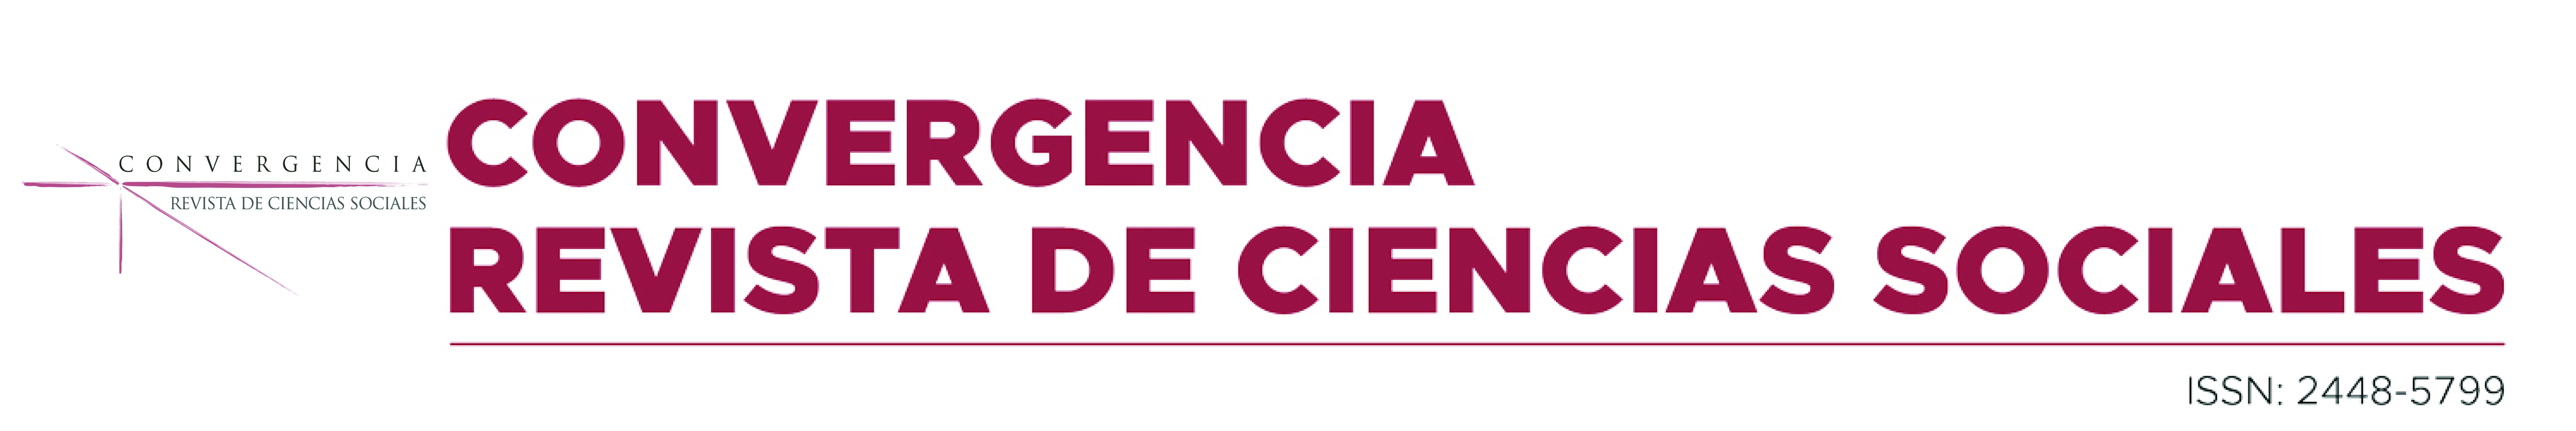 Convergencia Revista de Ciencias Sociales